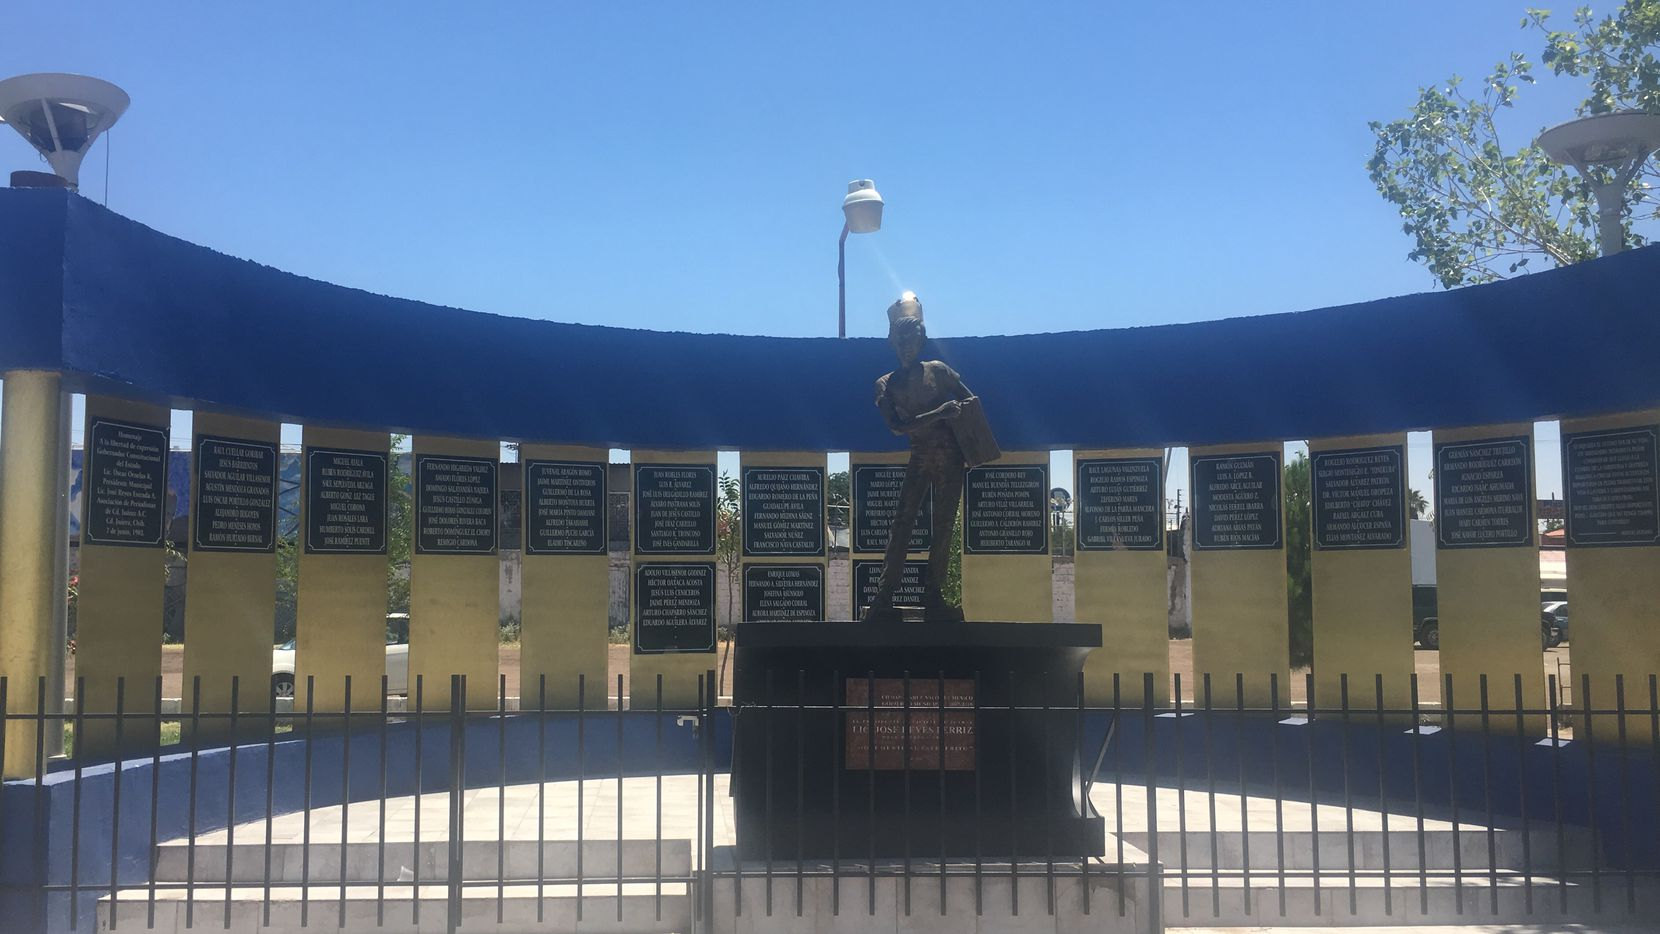 The Plaza del Periodista monument in Ciudad Juarez pays tribute to journalists in the Mexican border city. A sculpture of an old fashioned newspaper boy is the centerpiece. In June 2008 someone left a severed head at the foot of the statue as a warning to journalists. (June 15,2017).